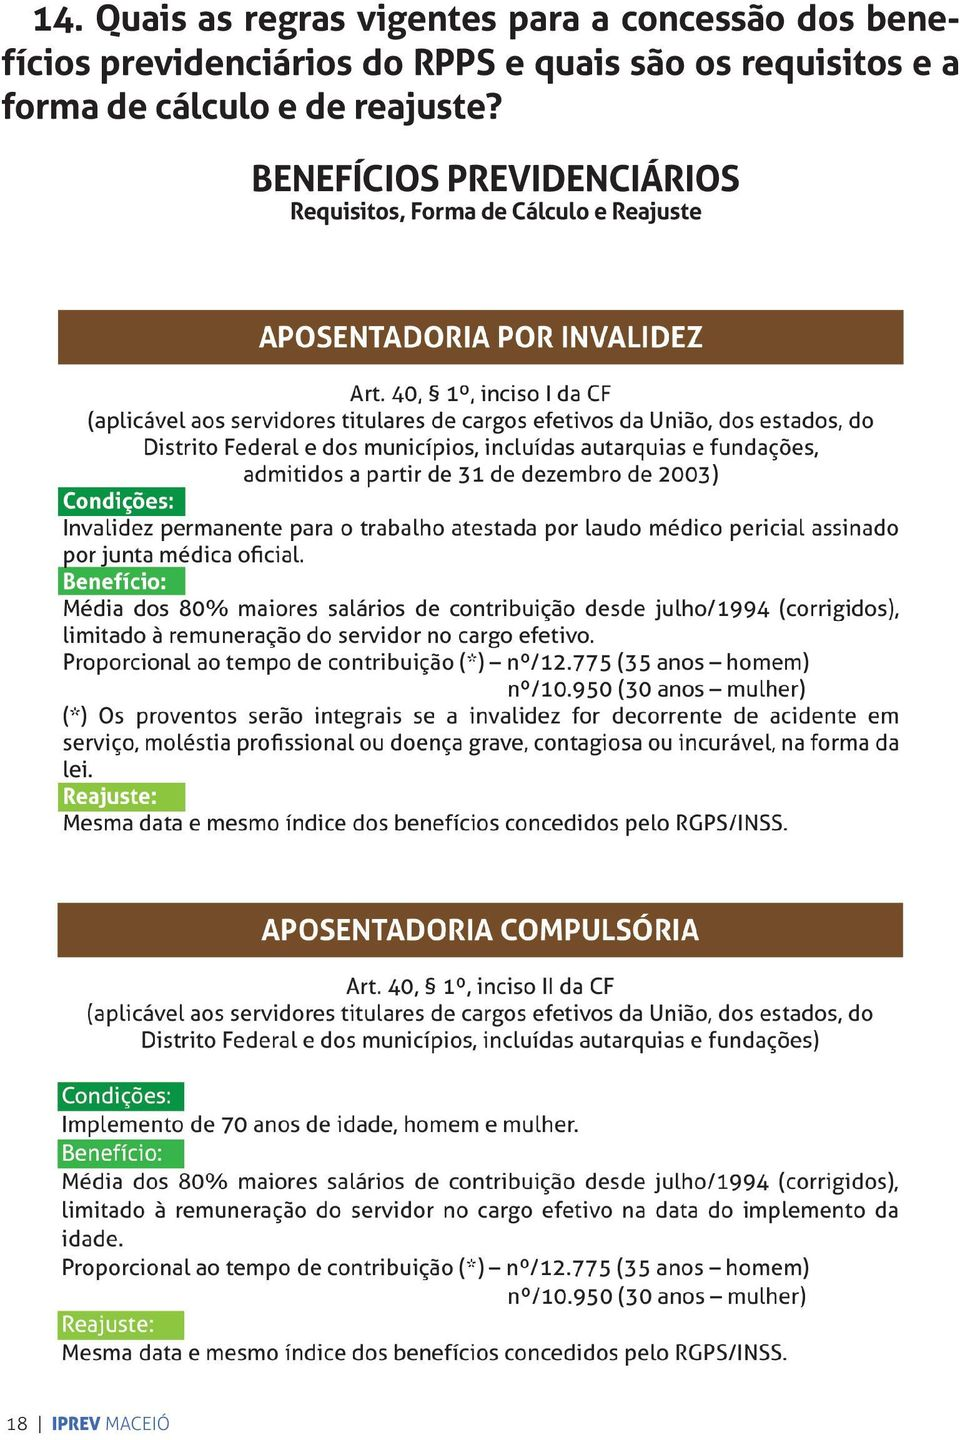 requisitos e a forma de cálculo e de reajuste?